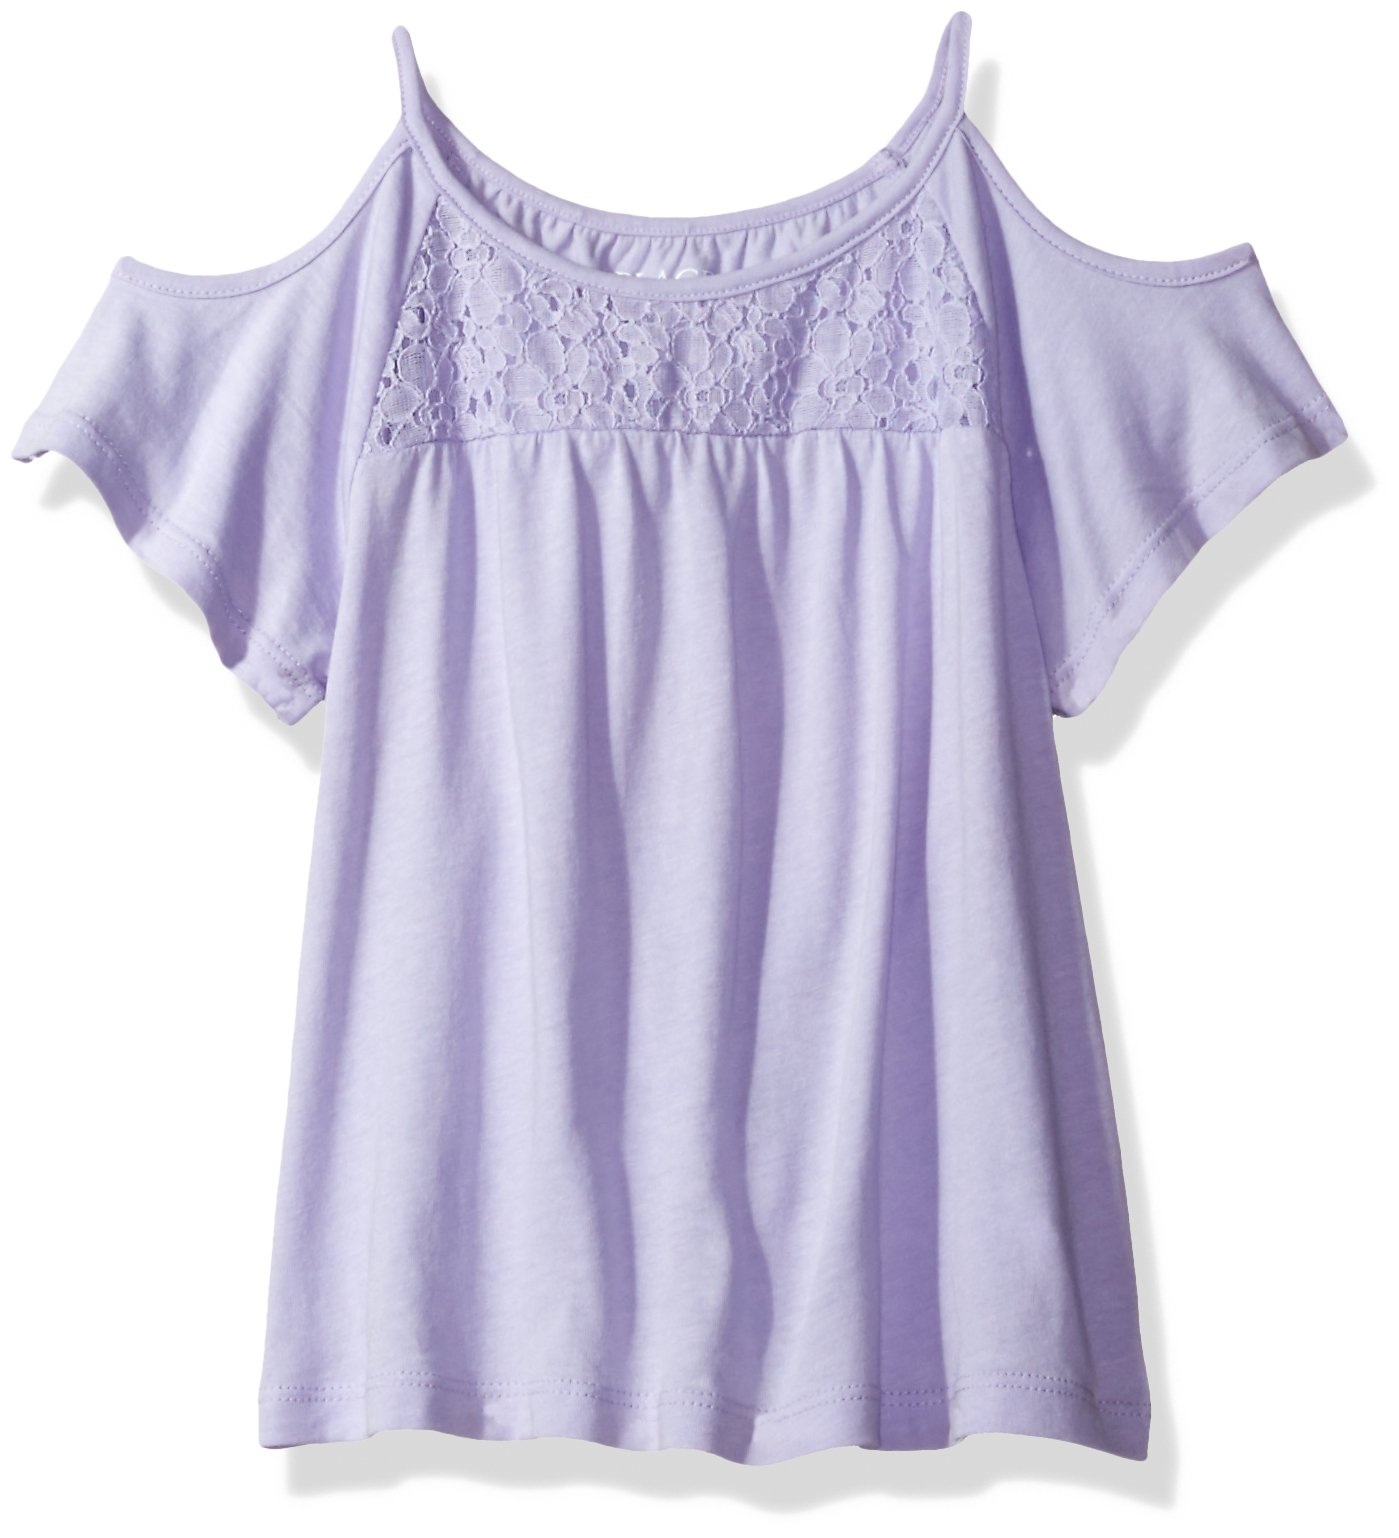 The Children's Place Girls' Cold Shoulder Top